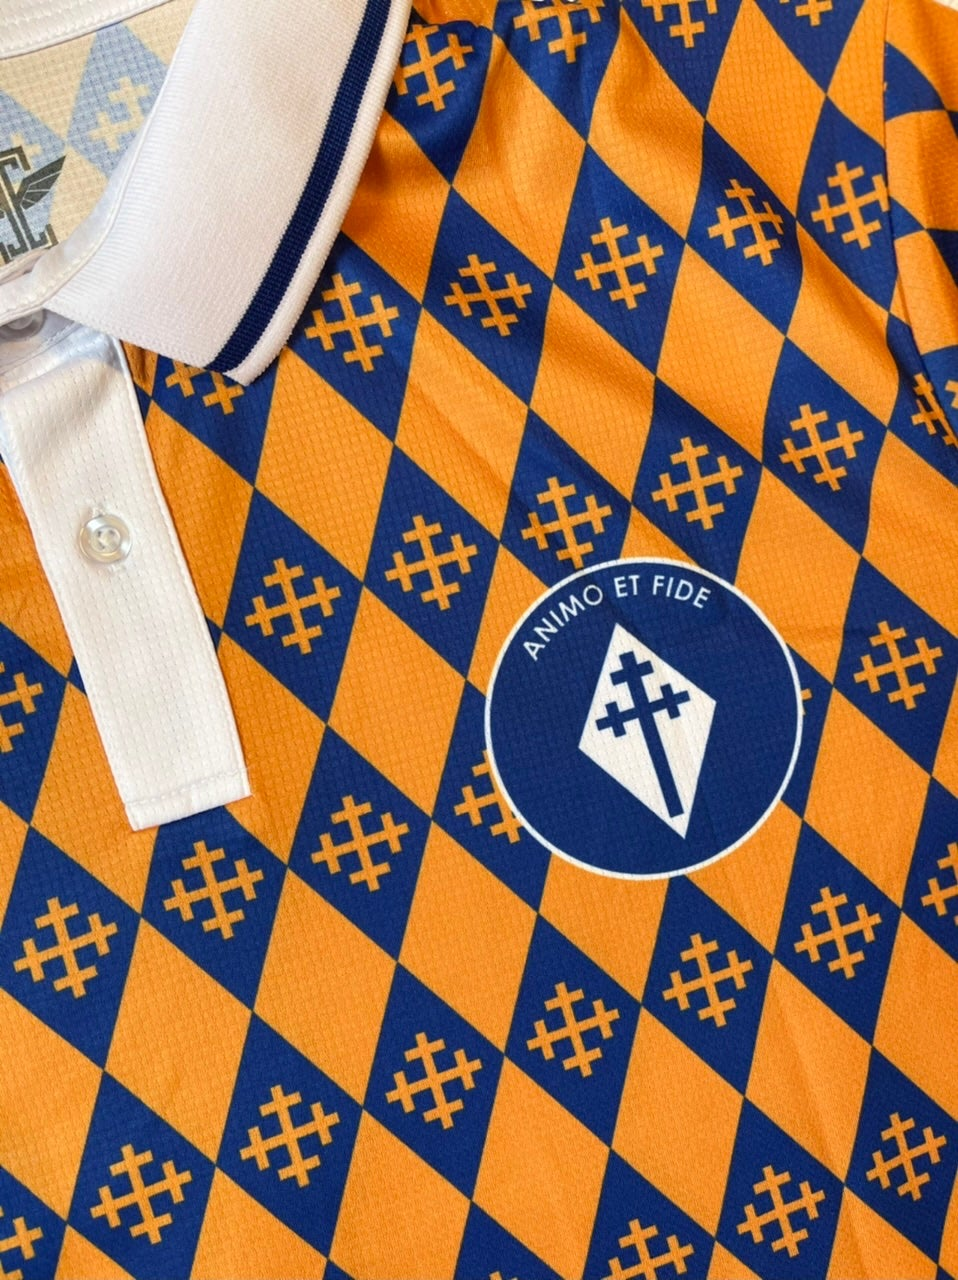 Stockport County Shirts x Icarus FC Concept Animo et Fide Shirt